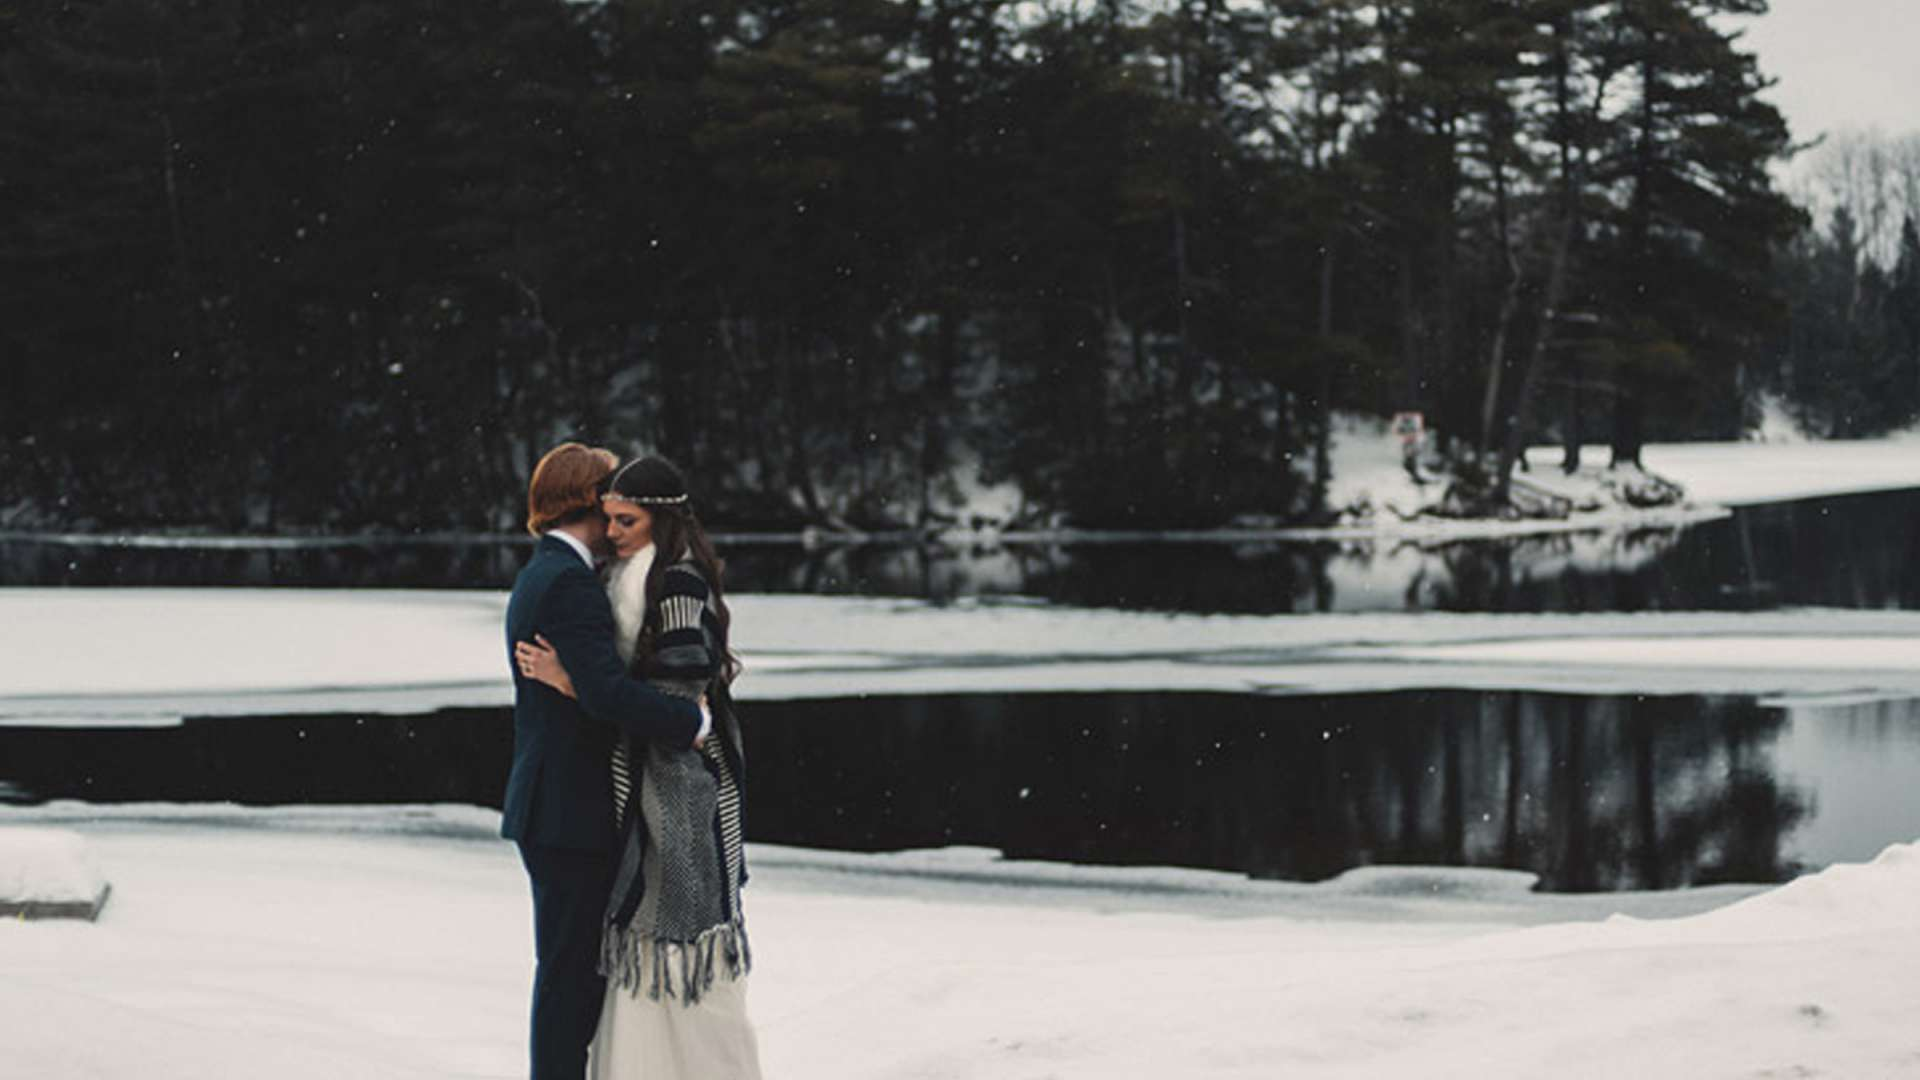 A Winter Wedding Worth Swooning Over